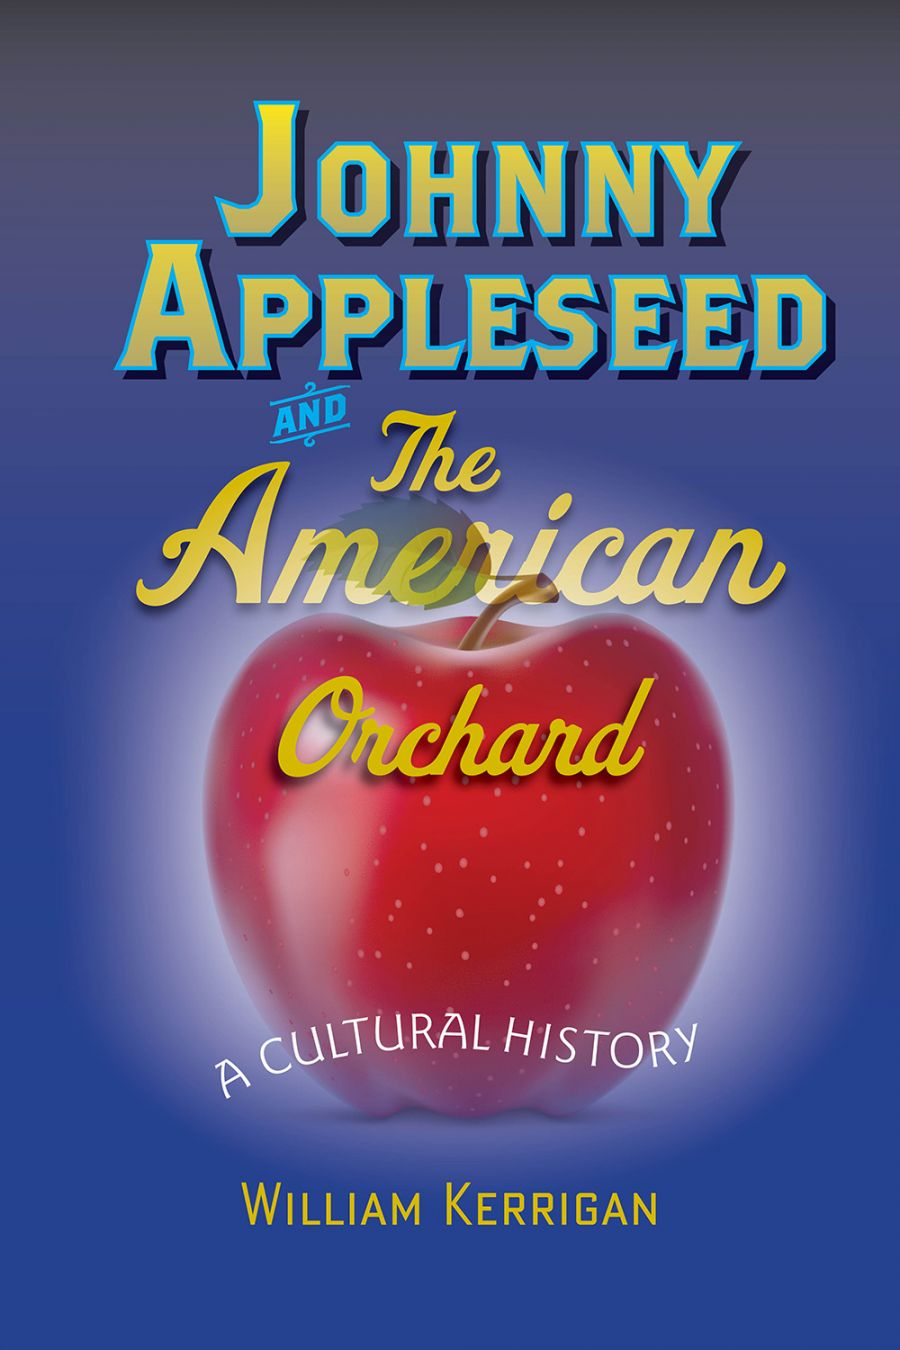 *Johnny Appleseed and the American Orchard: A Cultural History* explores the real life of the American icon. Image courtesy of the Johns Hopkins University Press.